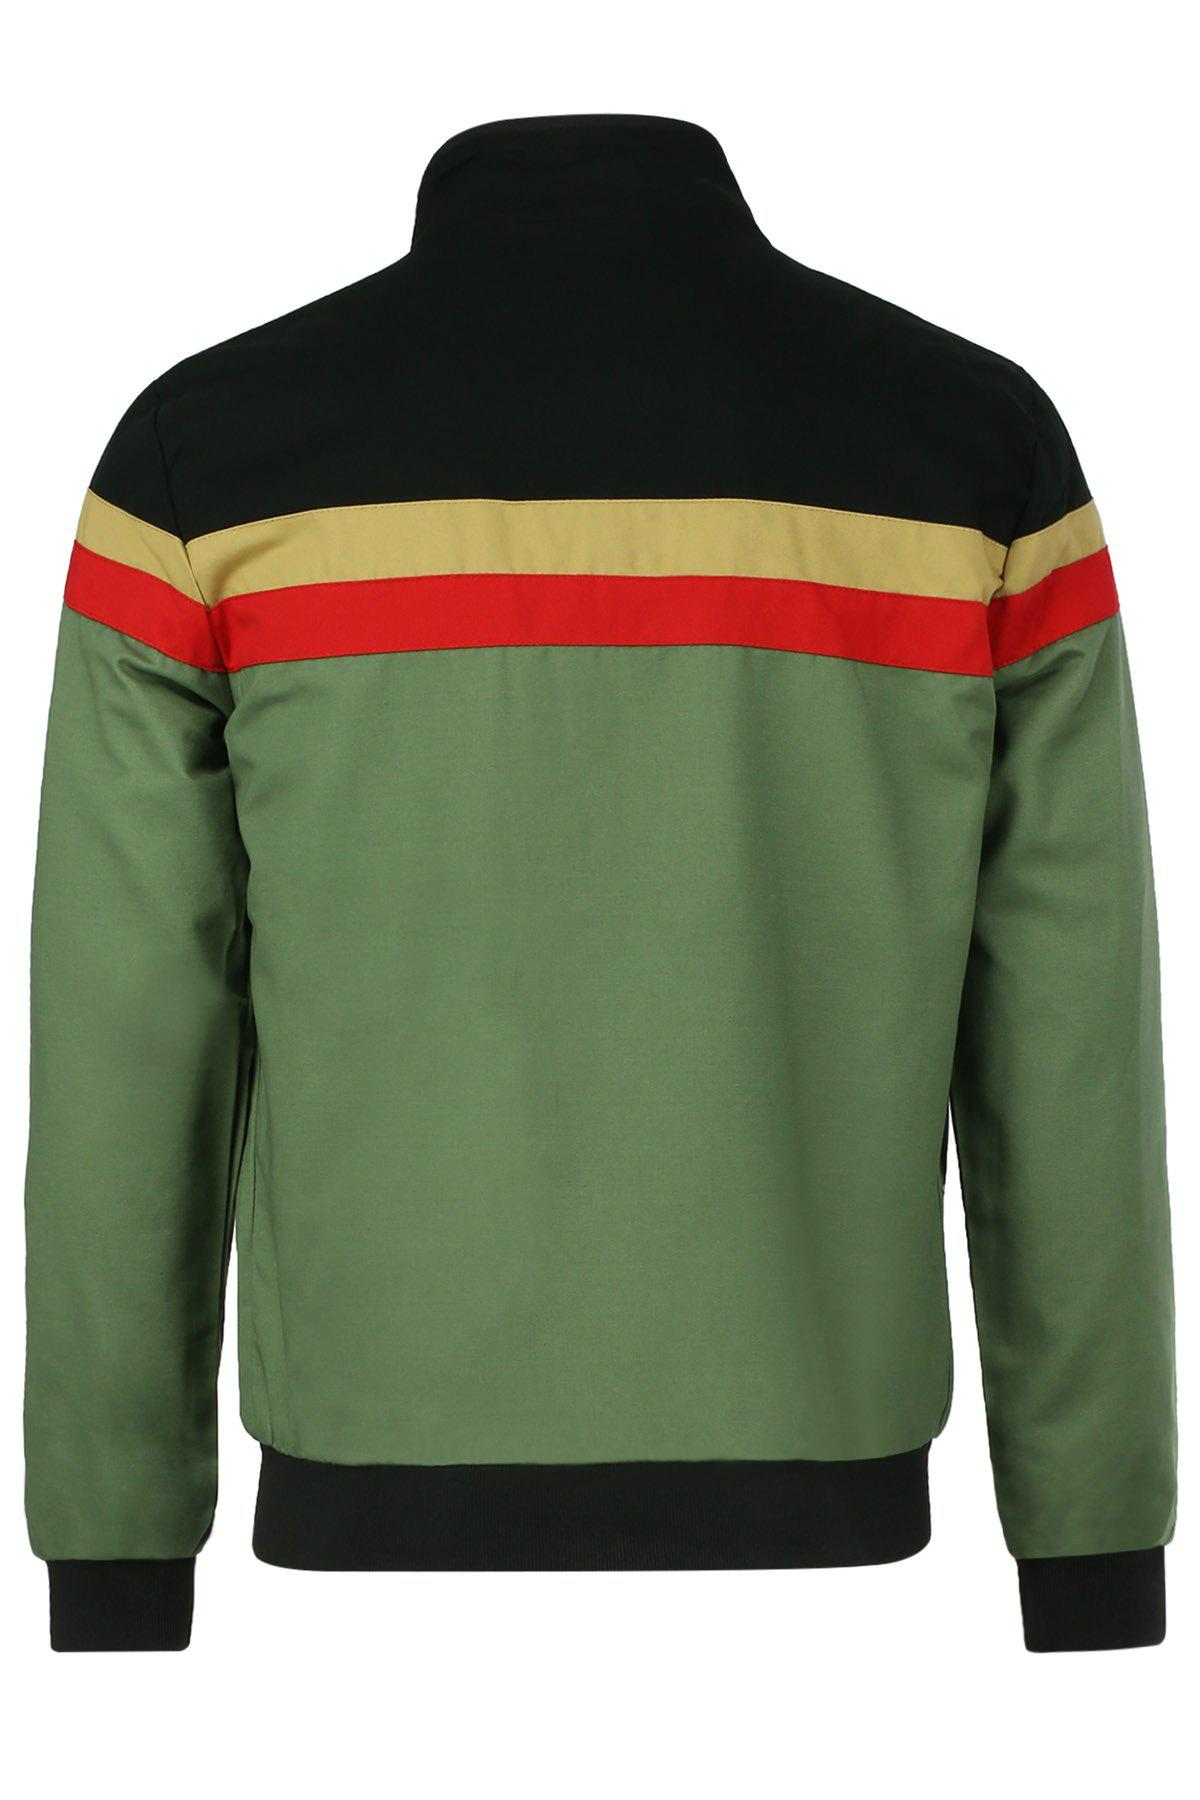 Plus Size Stripes Pattern Color Spliced Slimming Stand Collar Men's Long Sleeves Jacket - GREEN M